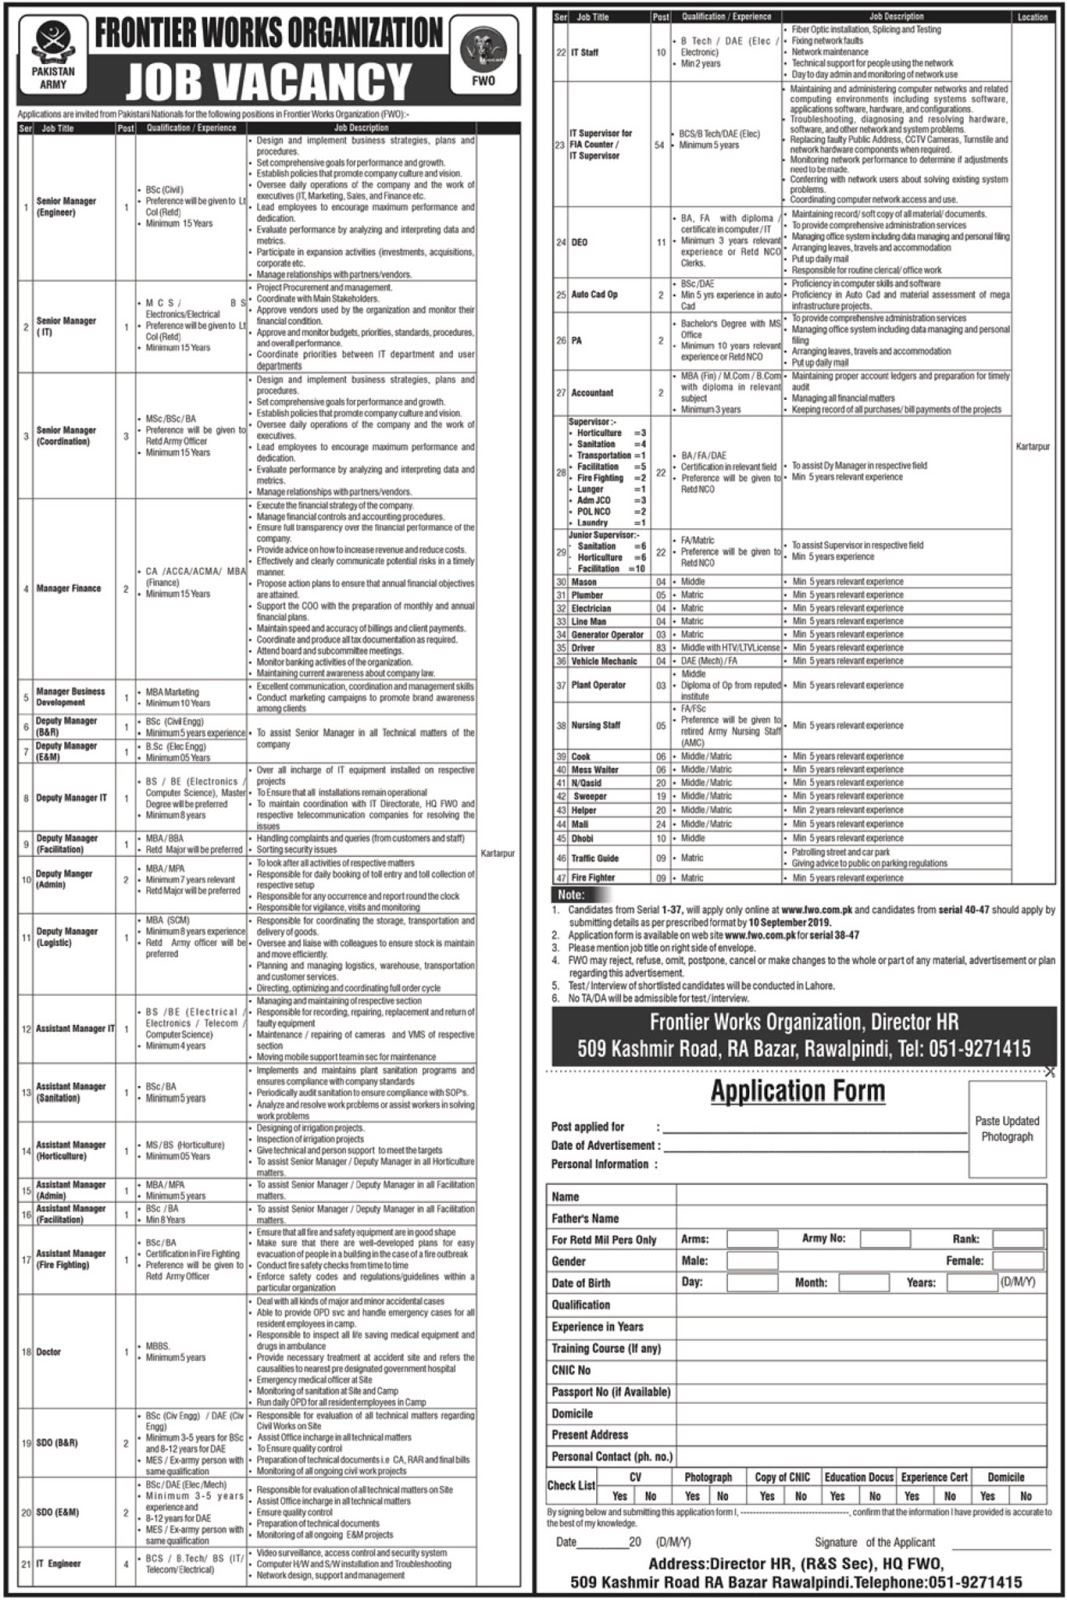 Frontier Works Organization FWO is inviting applications from eligible candidates for the posts of Manager. The Advertisement is published in Express on Sunday 01 September 2019. Last Date to apply for jobs is Tuesday 10 September 2019.